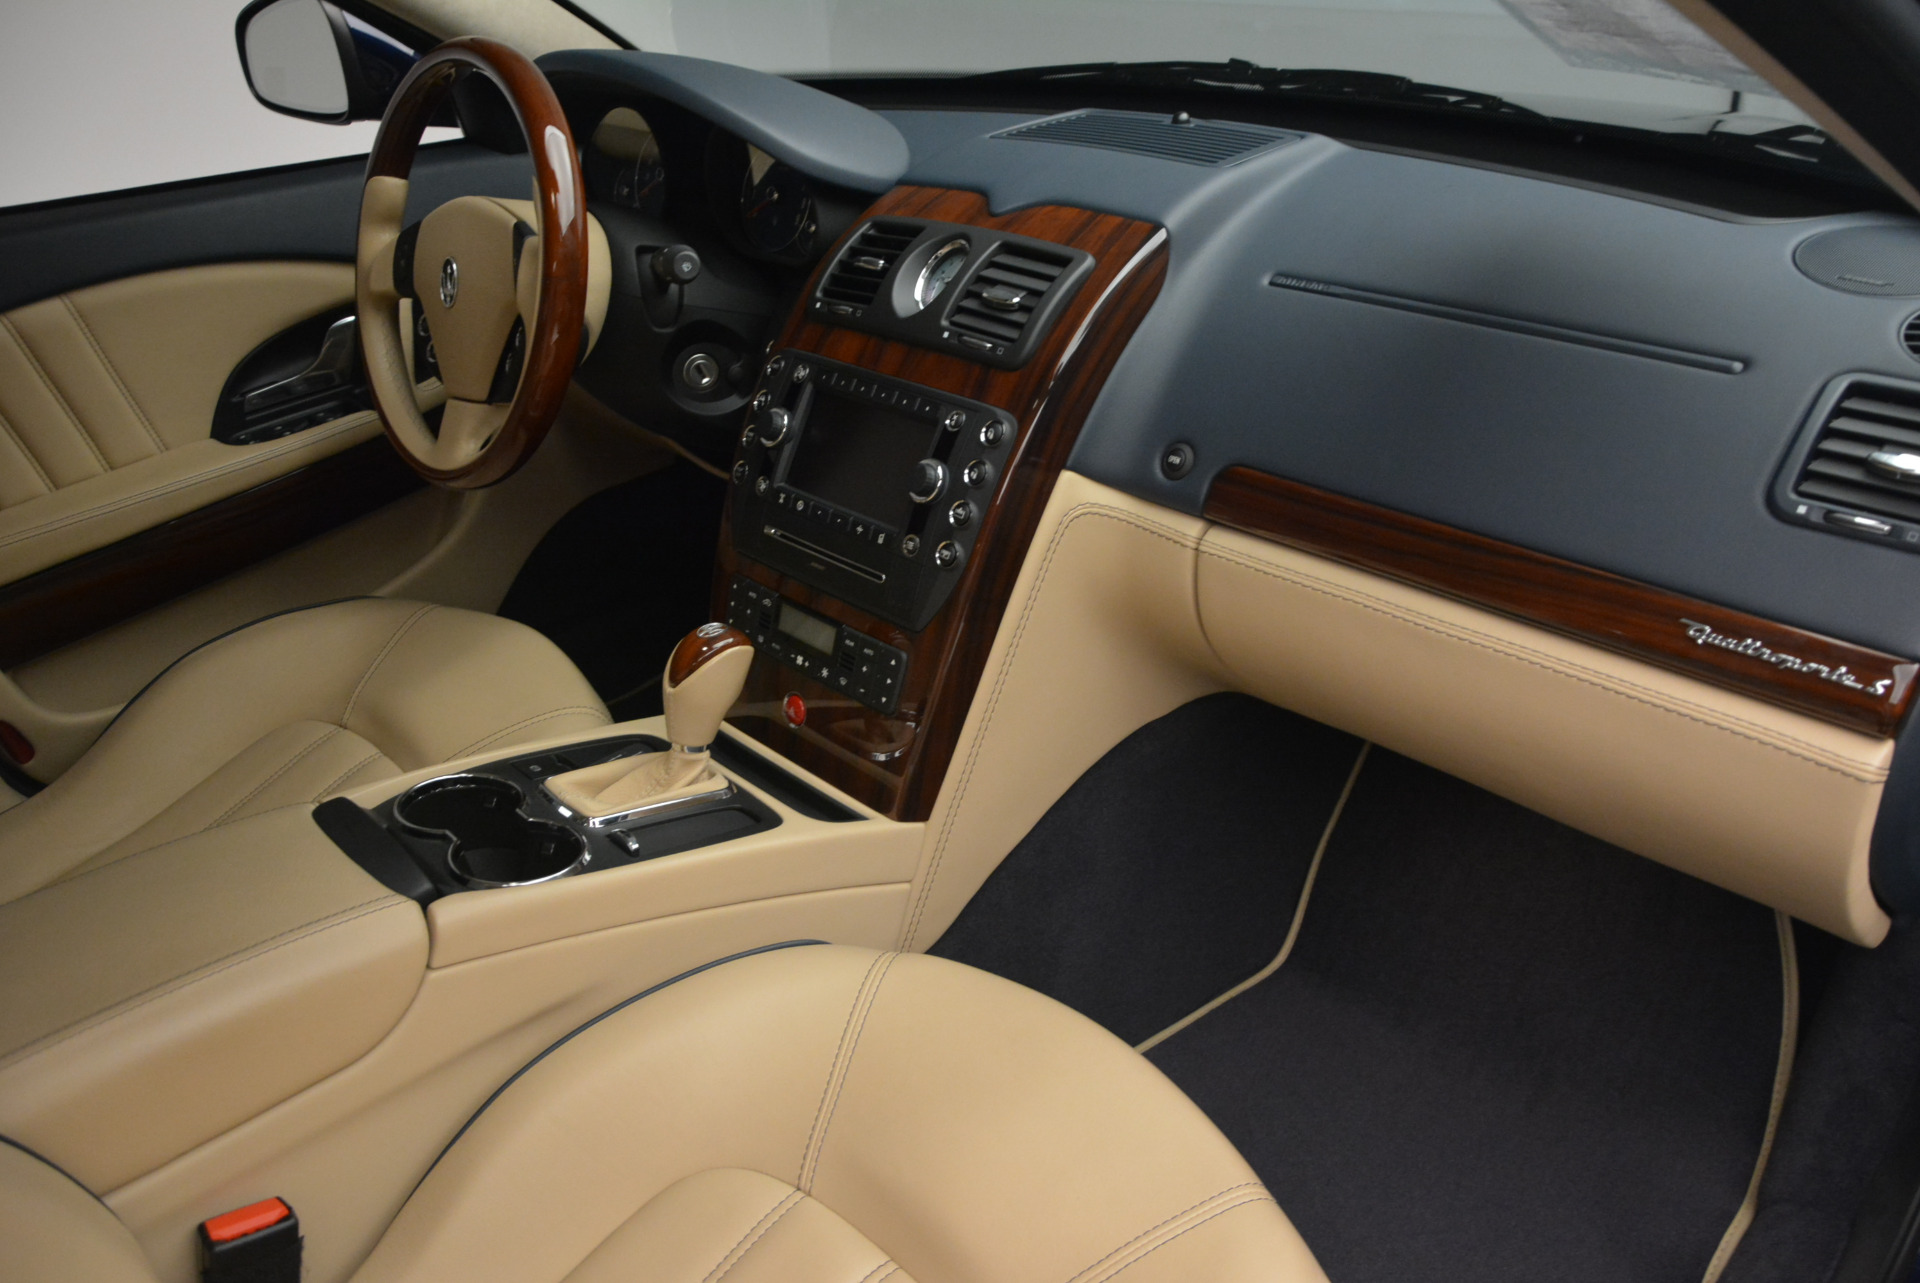 Used 2010 Maserati Quattroporte S For Sale In Westport, CT 795_p19